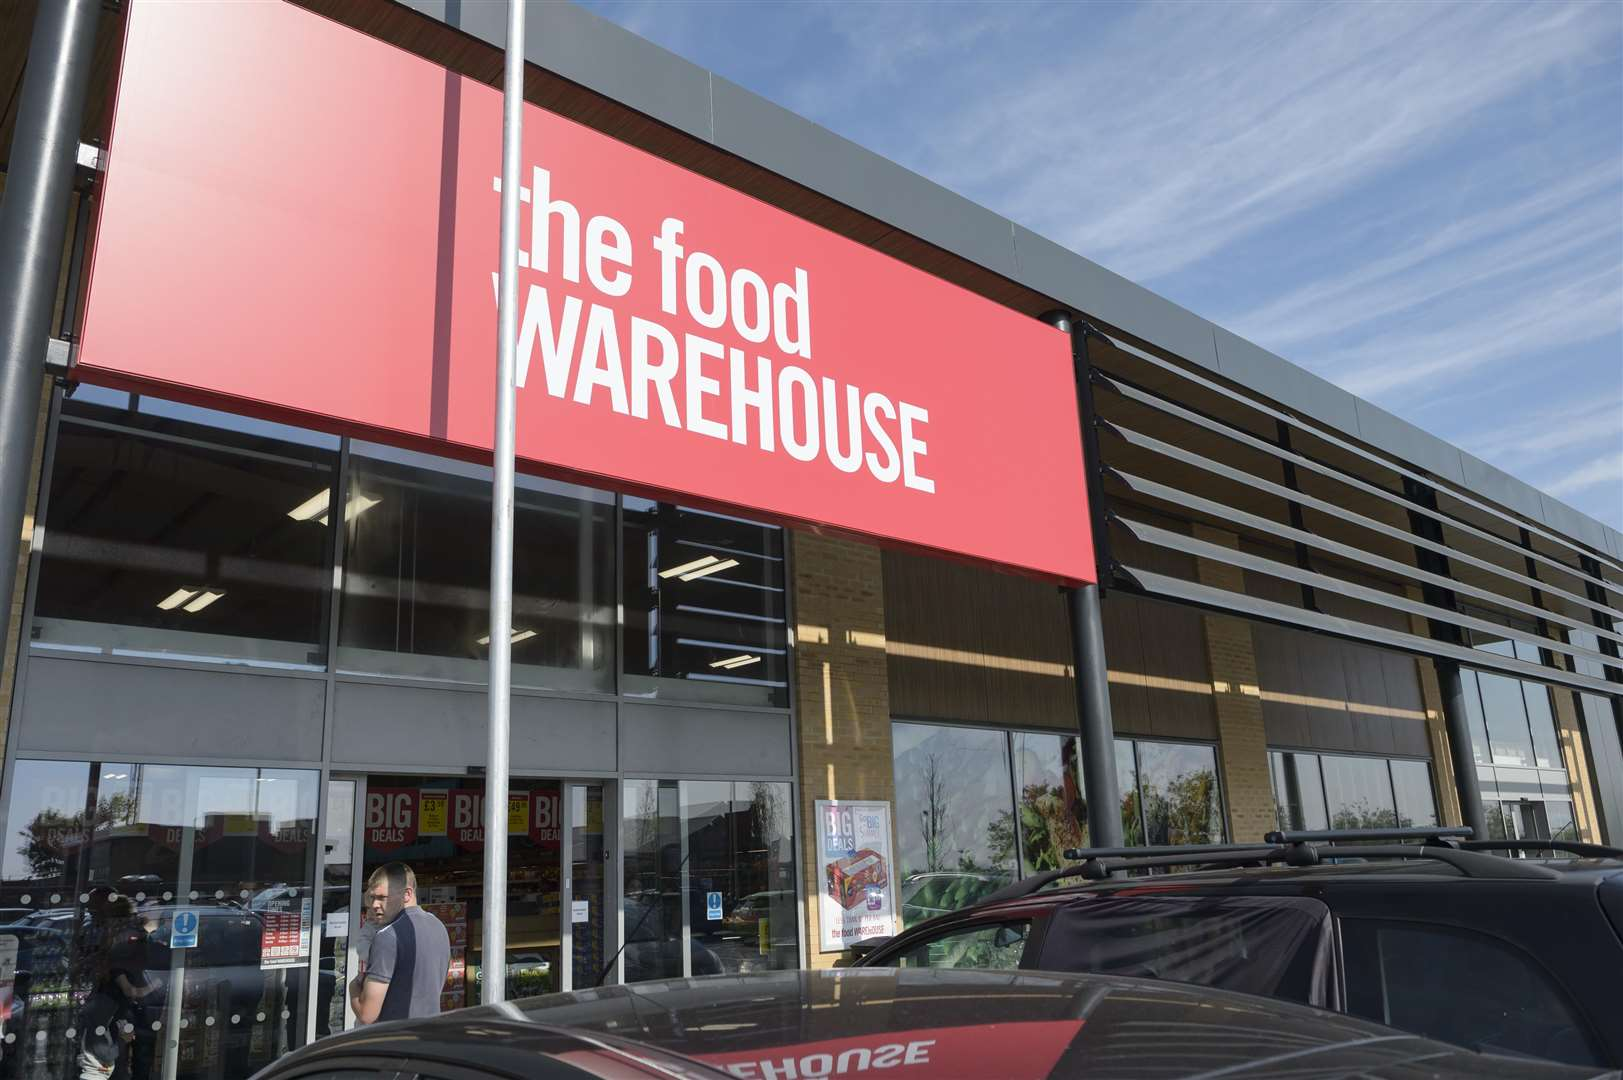 The Food Warehouse offers a bigger and better way to shop